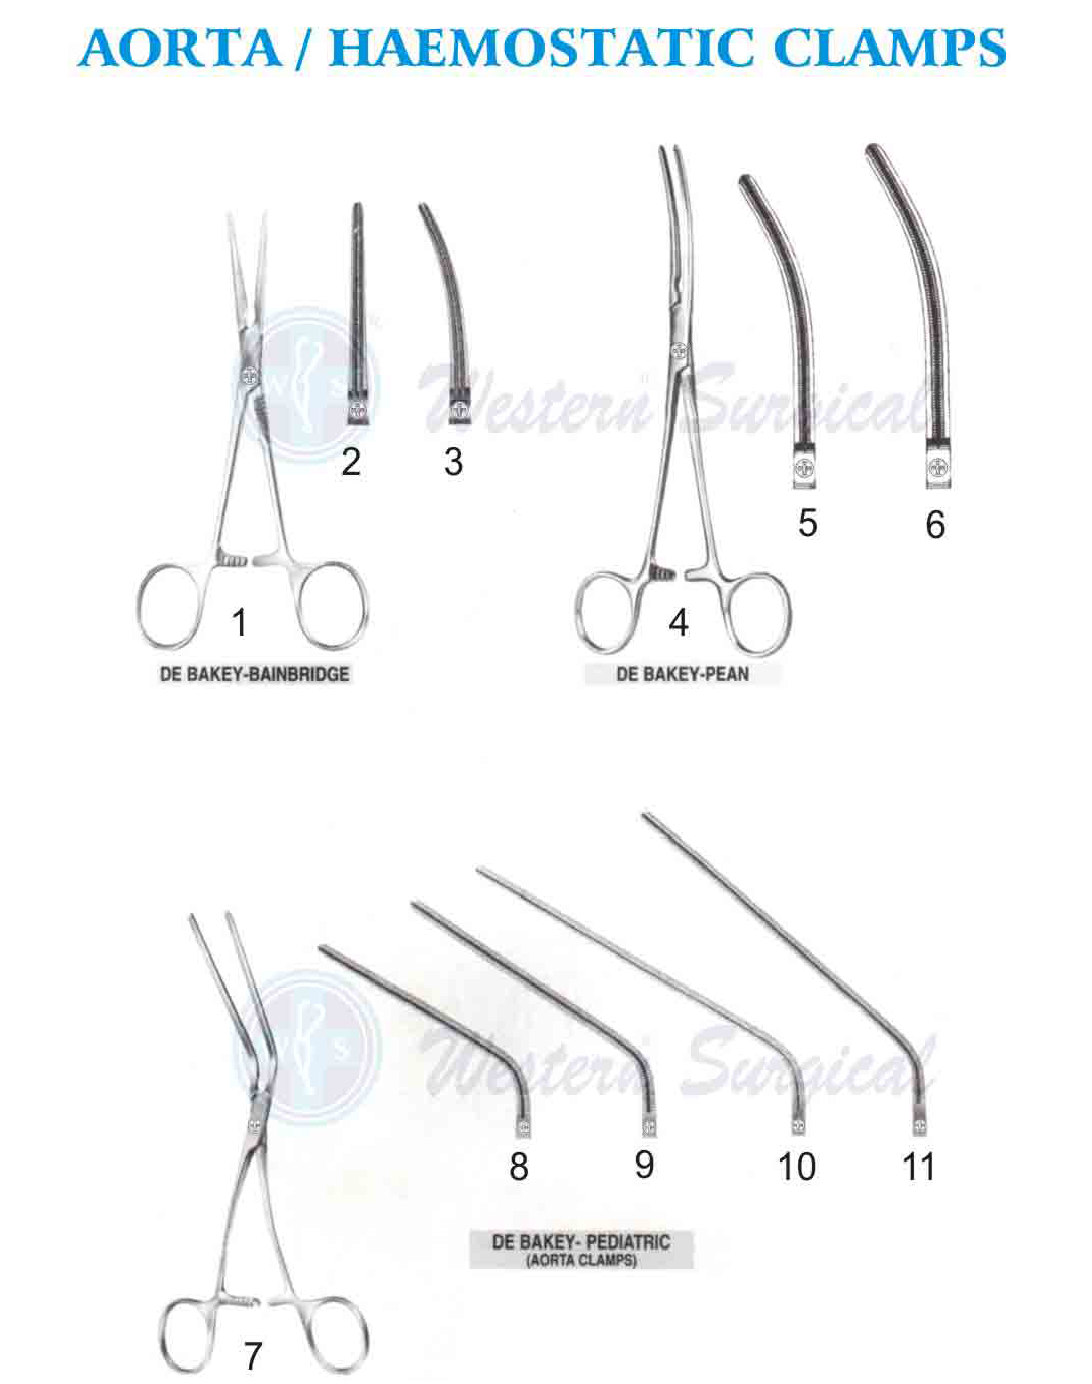 Aorta / Haemostatic Clamps